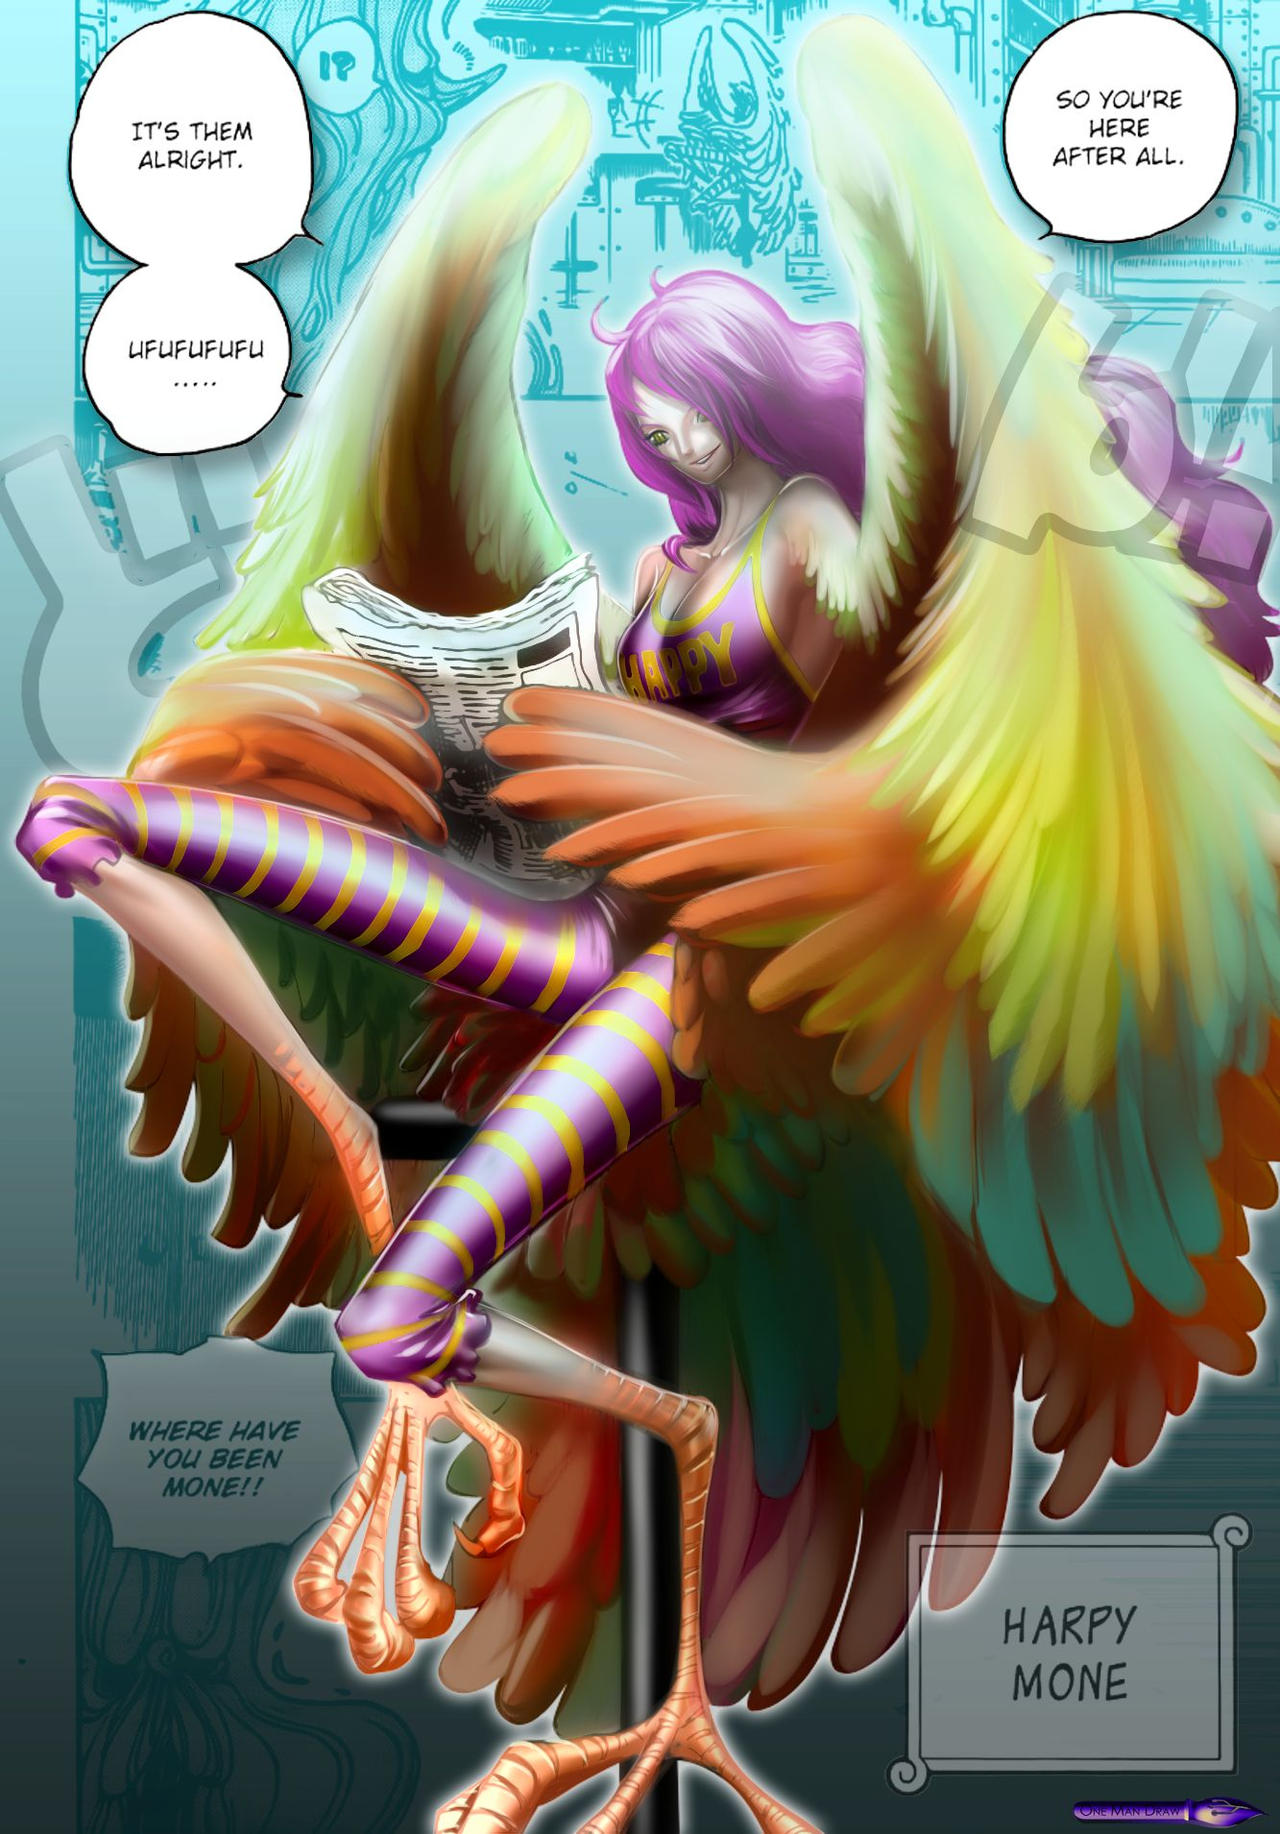 harpy_mone_fancy_colo_by_onemandraw-d4usib0.jpg